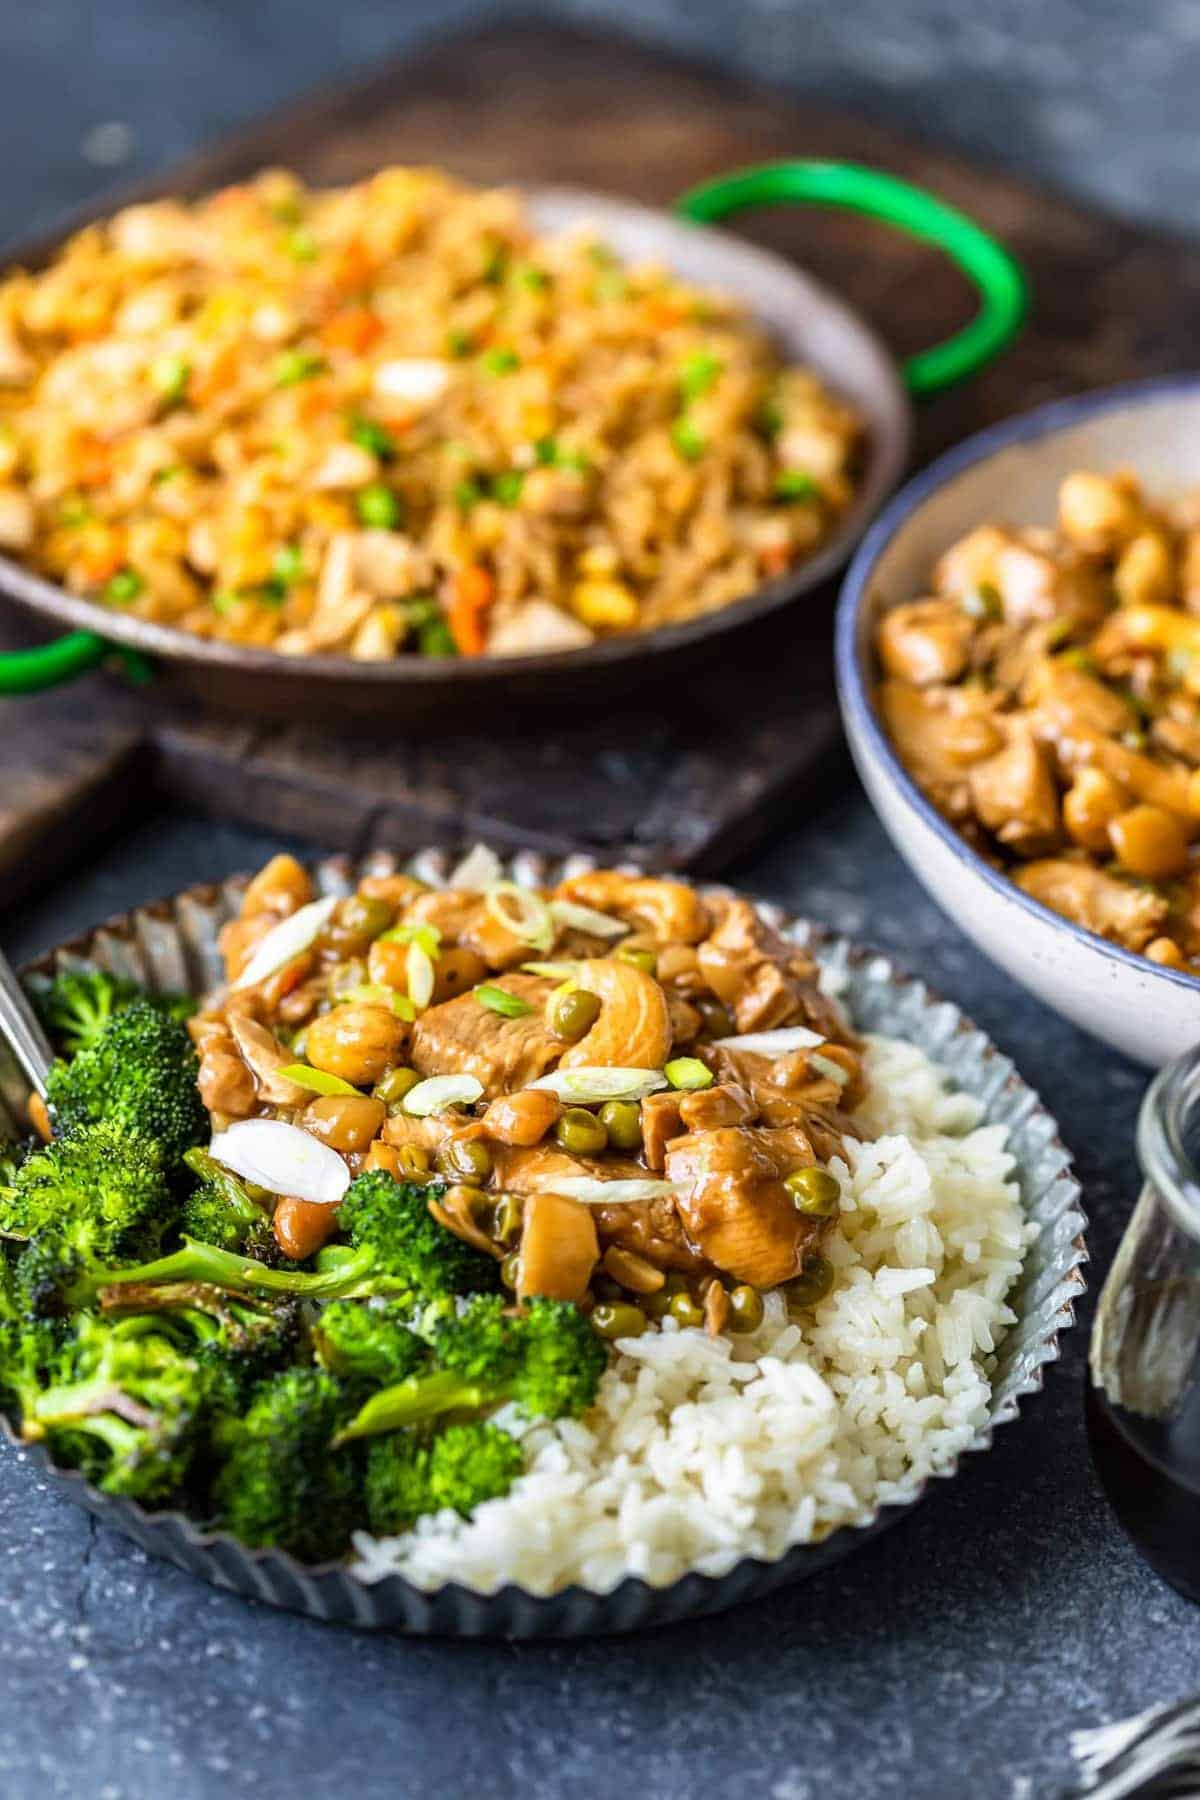 Rice, broccoli and Chinese chicken served on a metal plate